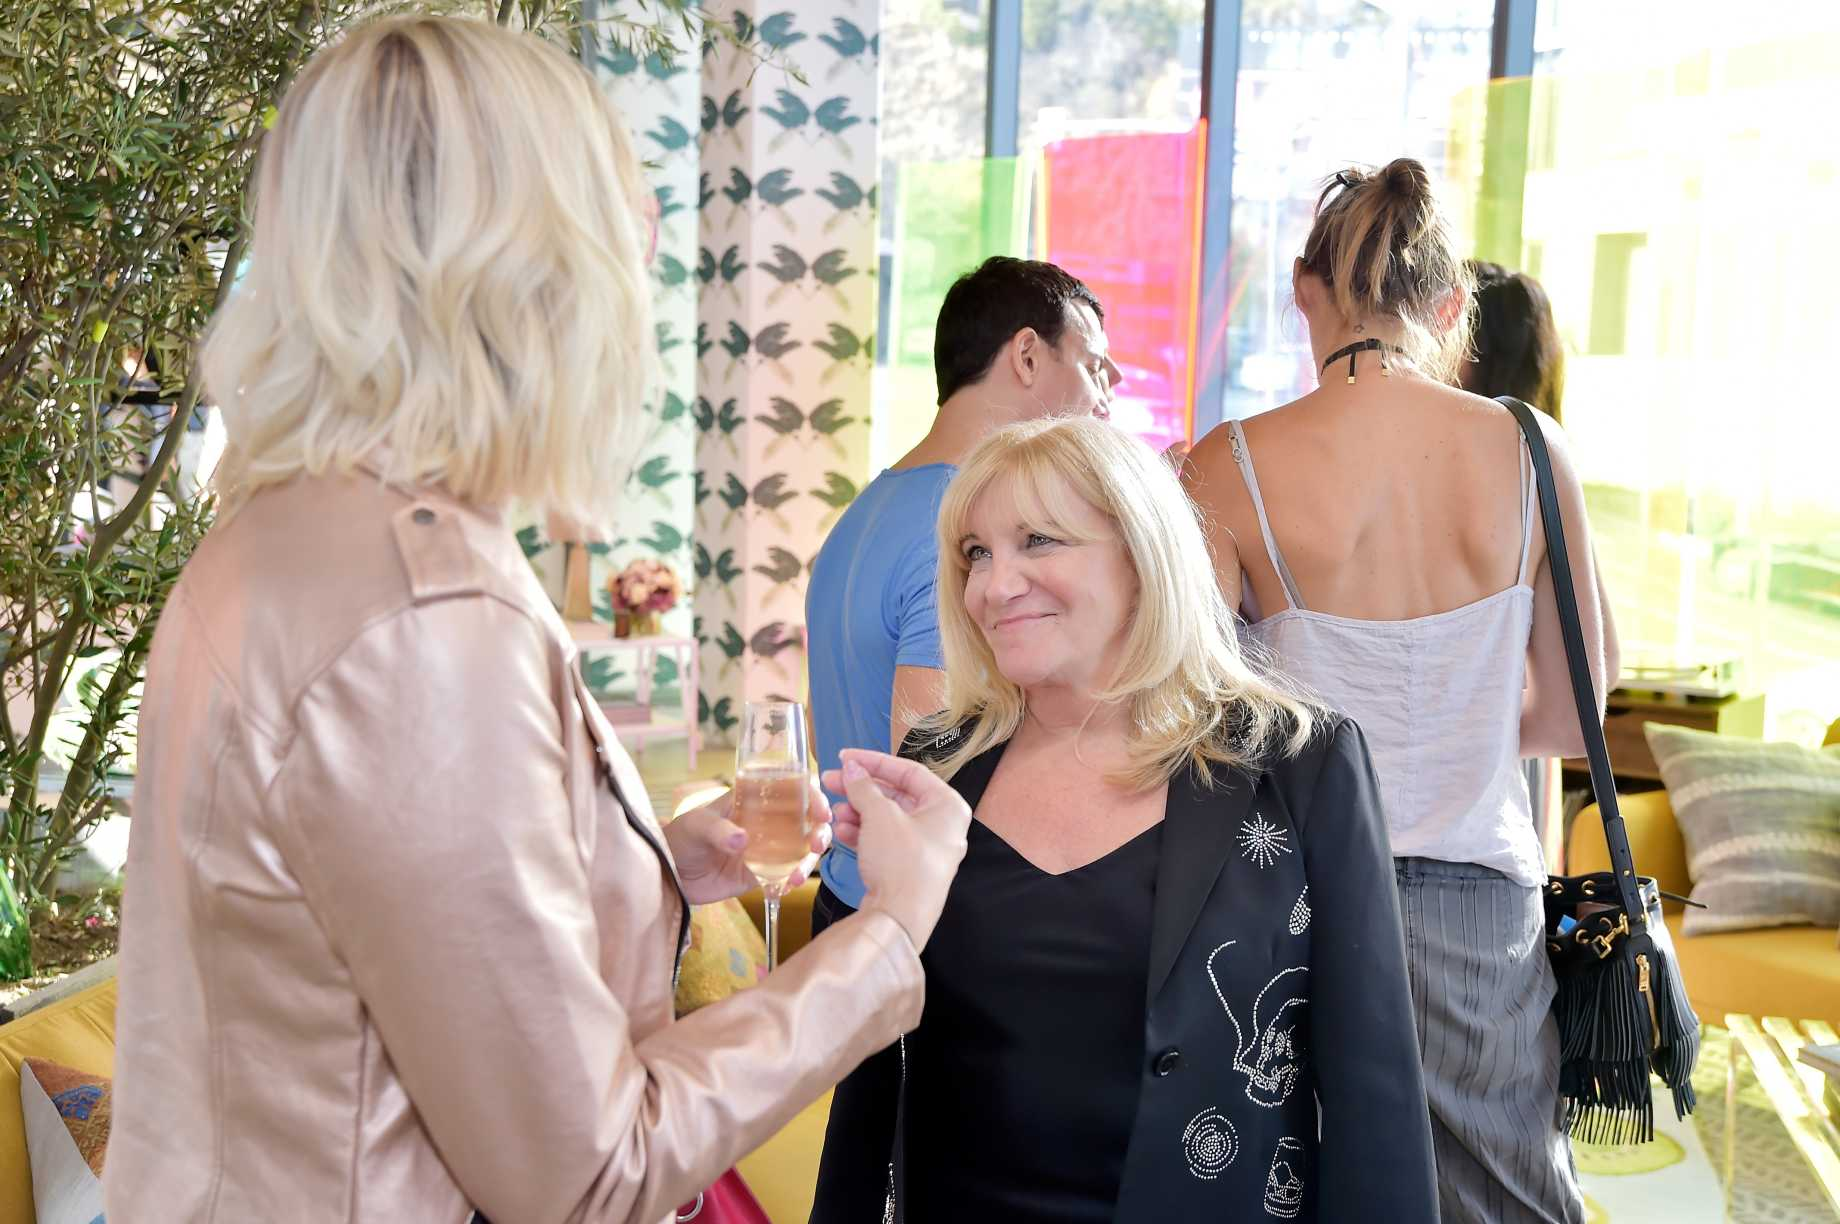 Karen Harvey & INDX Celebrate Creativity in L.A.